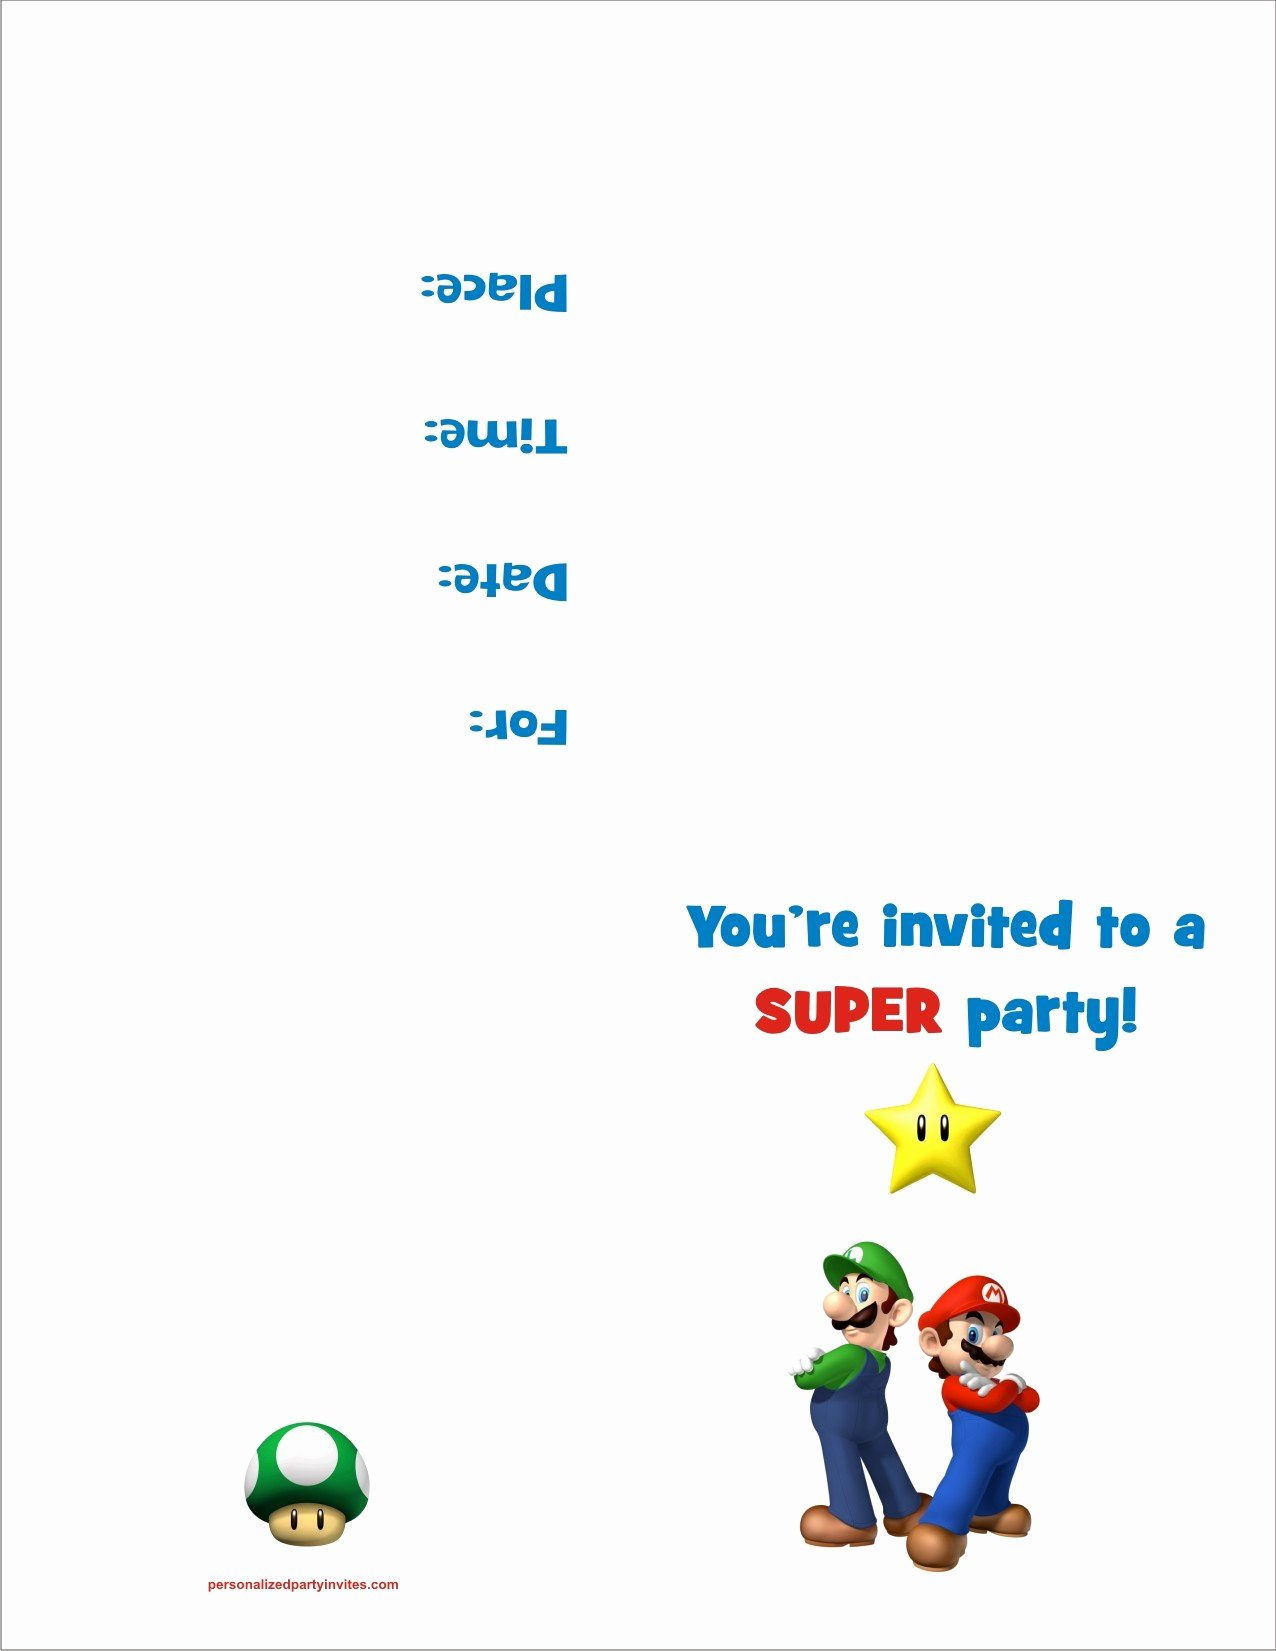 Free Printable Anniversary Invitations Elegant Super Mario Bros Free Printable Birthday Party Invitation Personalized Party Invites